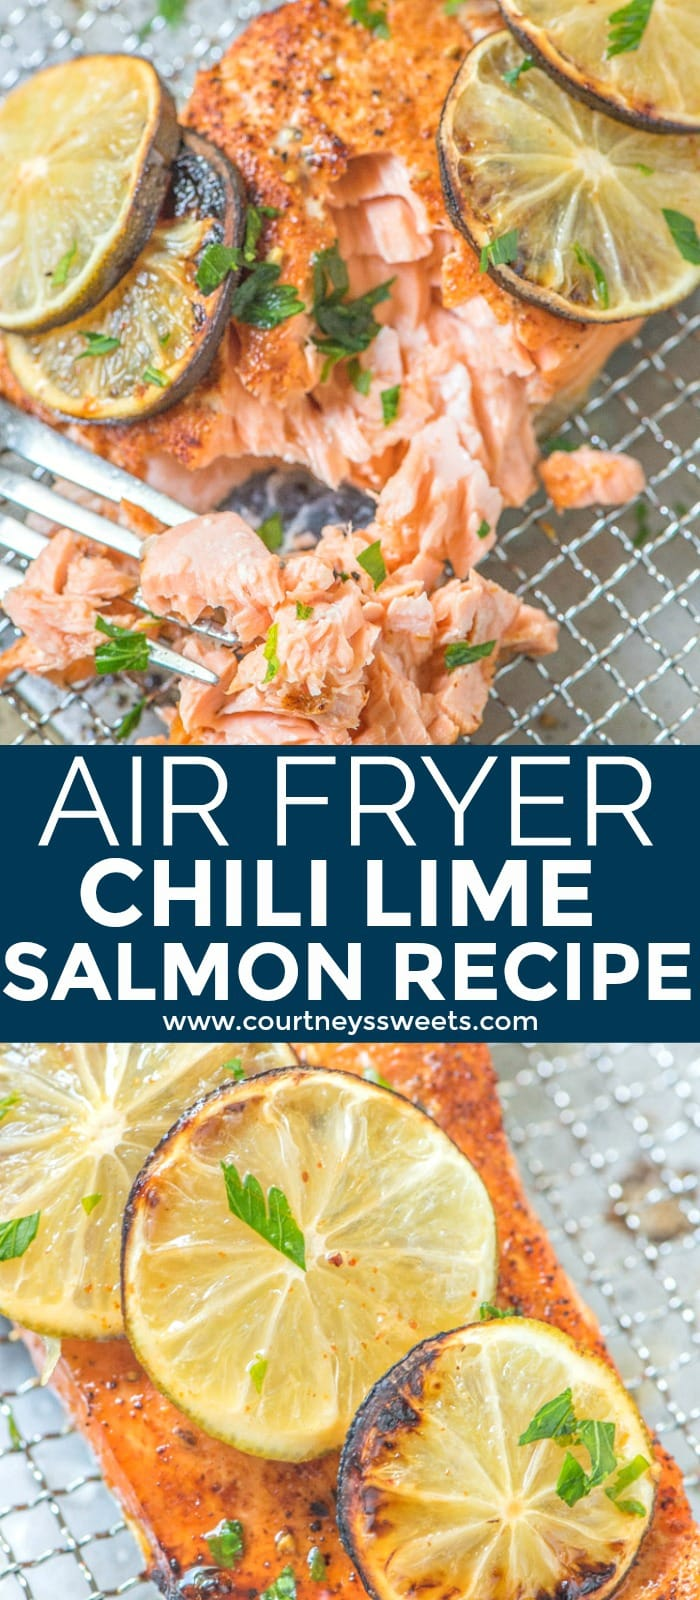 This Air Fryer Salmon recipe is a family favorite! It's full of flavor and a great way to cook chili lime salmon.